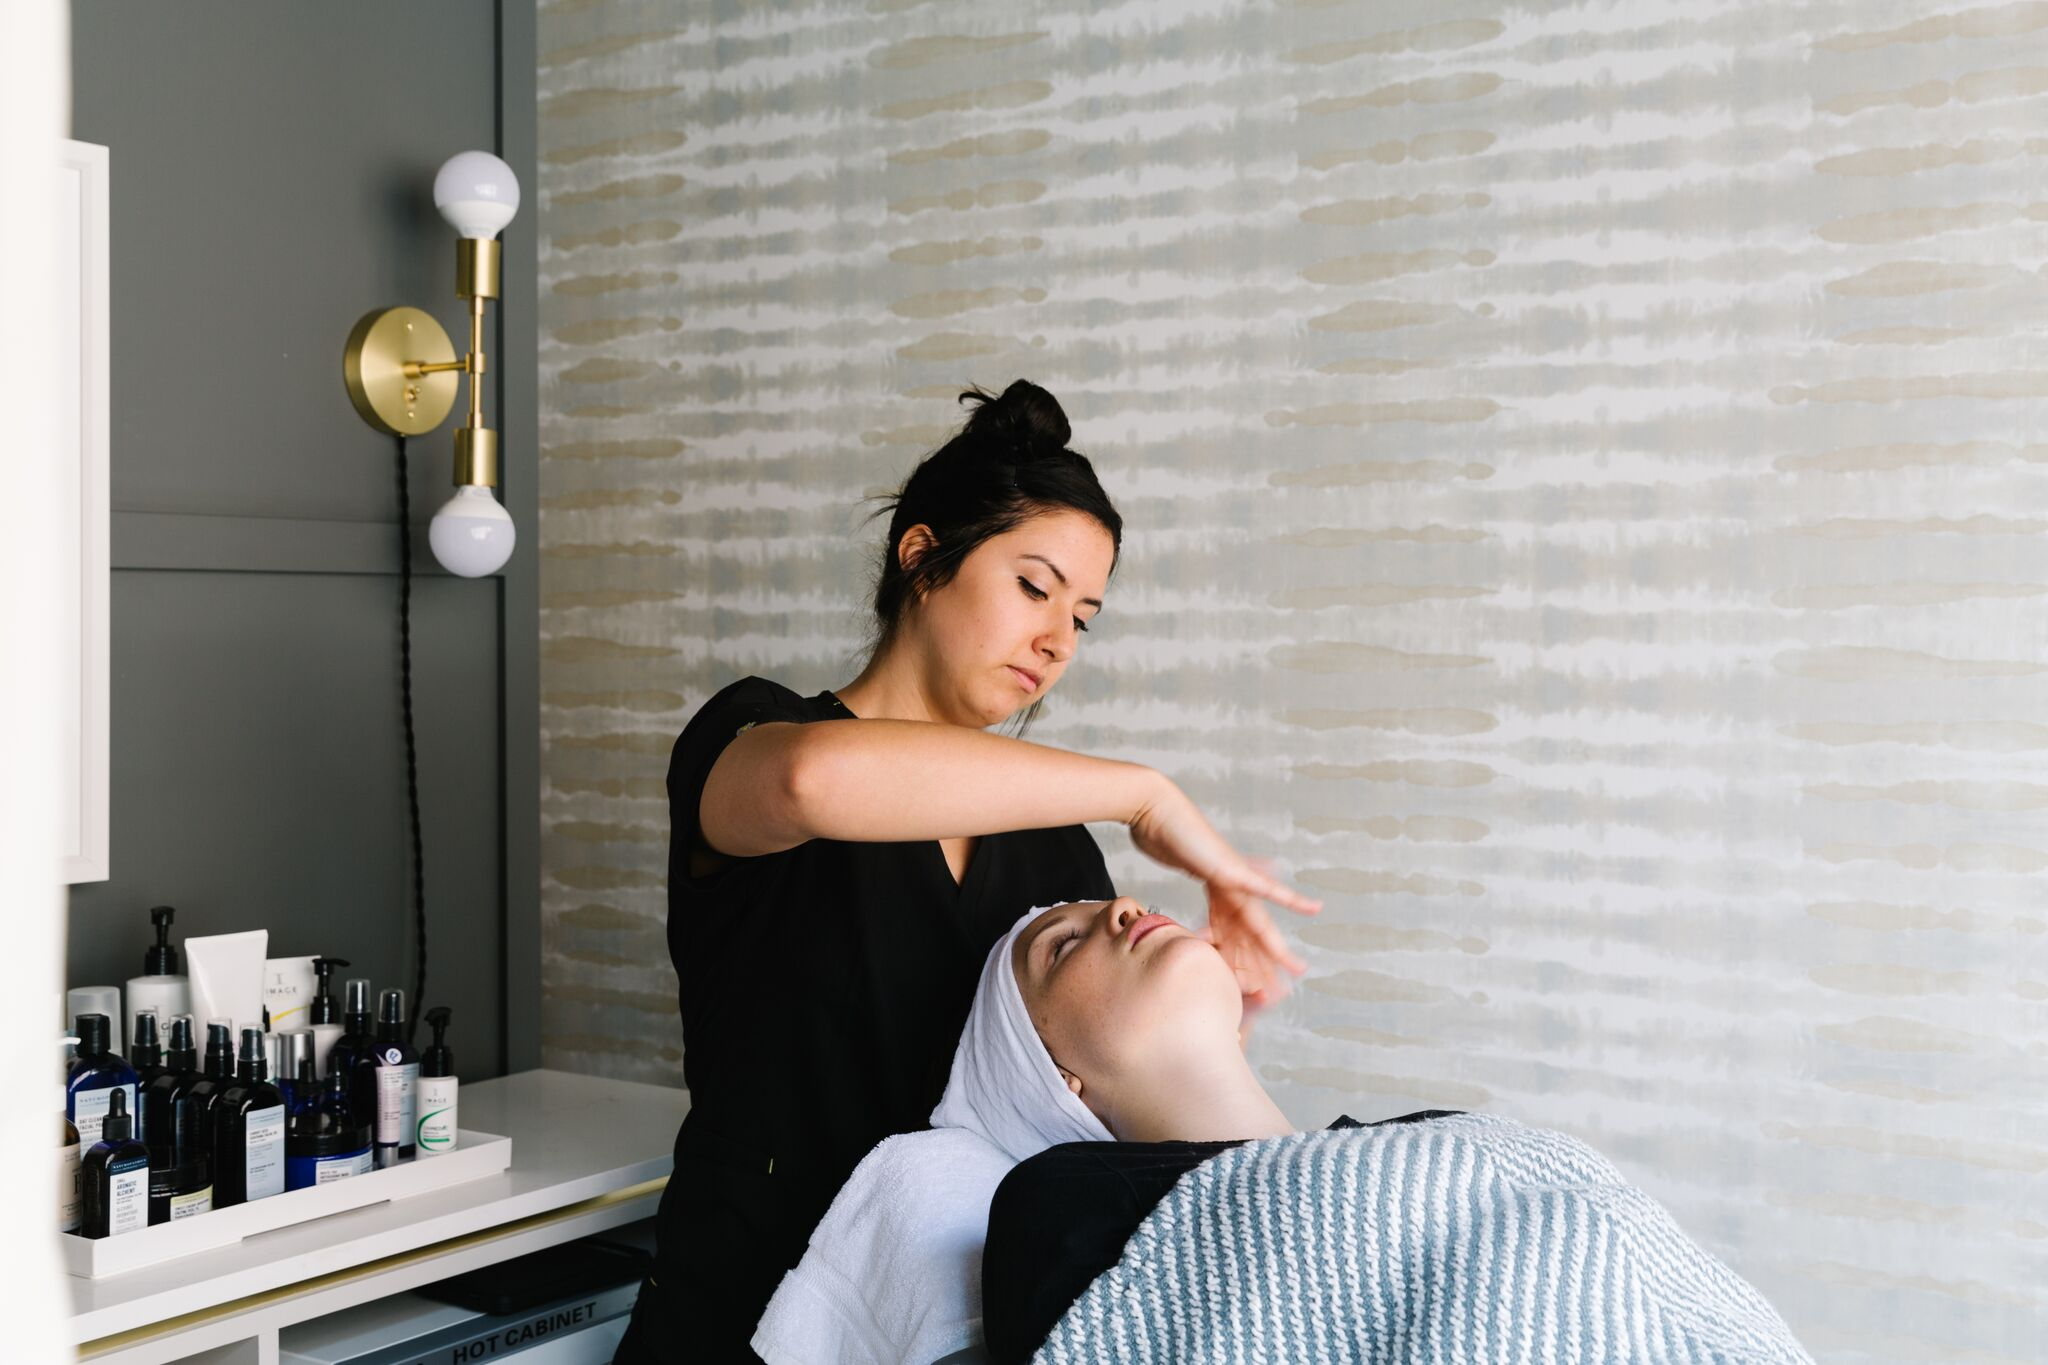 The Drybars of Facials Have Come to Save Your Skin